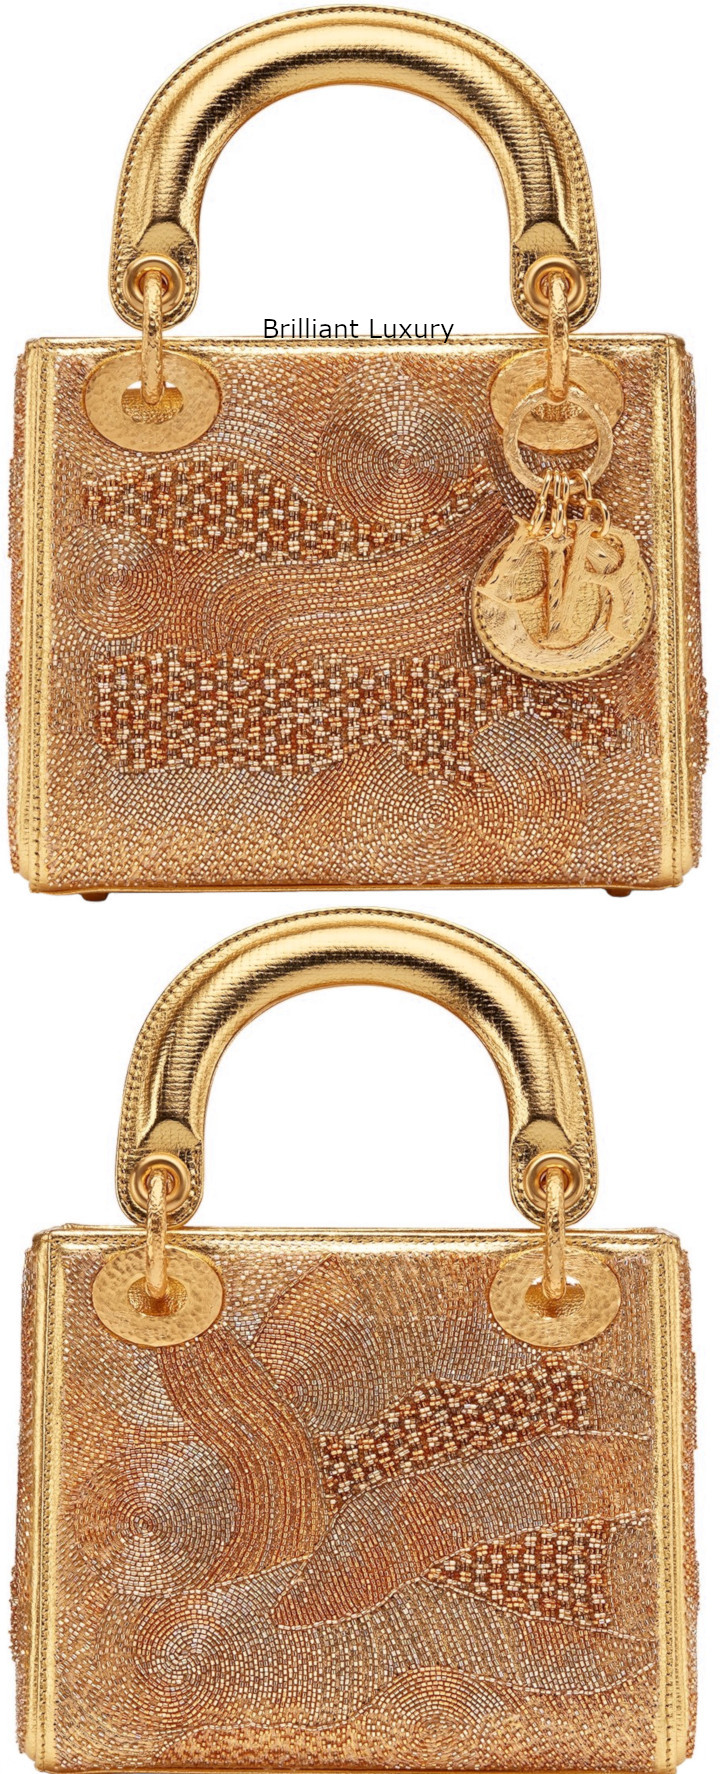 Brilliant Luxury│Lady DIOR Art Bag in gold color textured goatskin, Designer Olga de Amaral